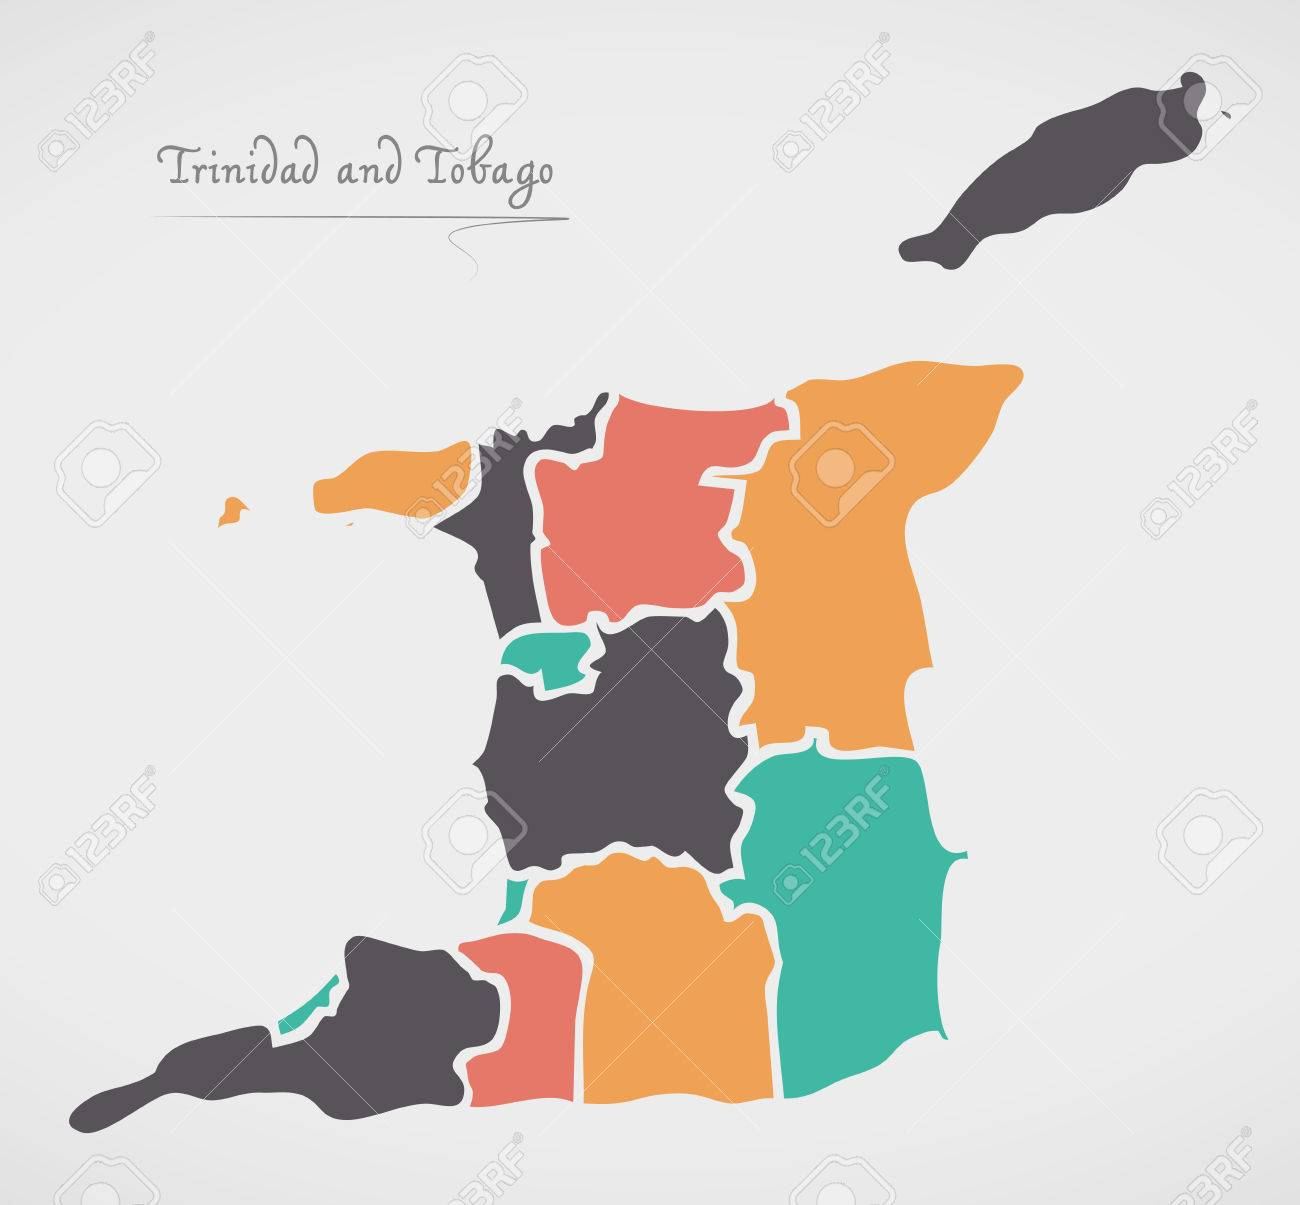 Trinidad and Tobago Map with states and modern round shapes - 81437565